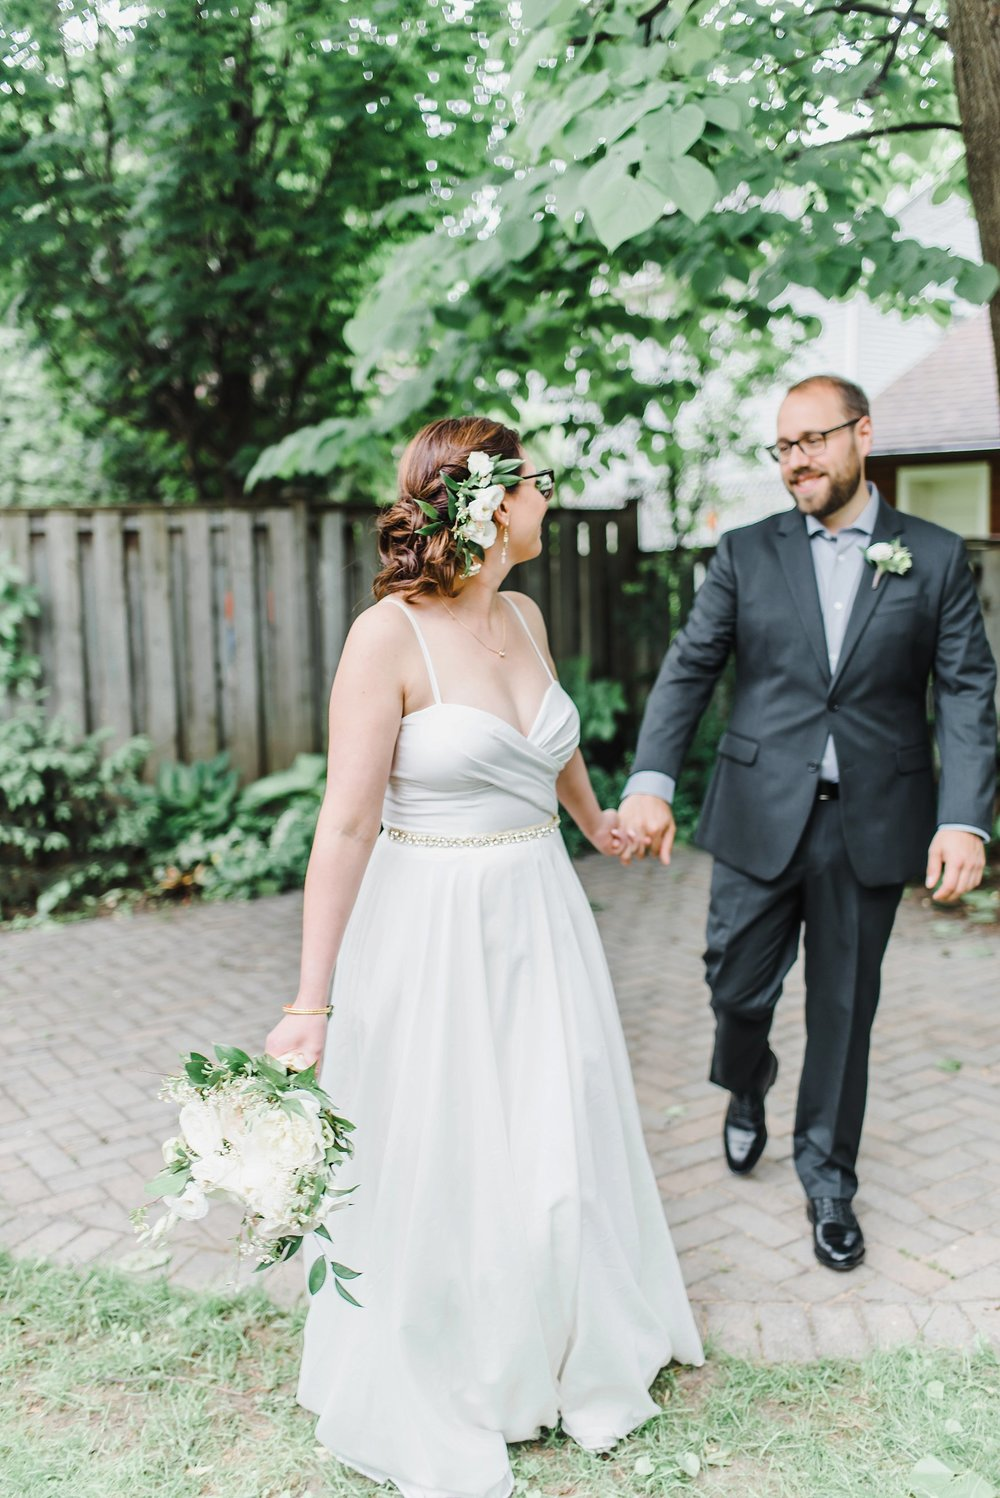 light airy indie fine art ottawa wedding photographer | Ali and Batoul Photography_1699.jpg